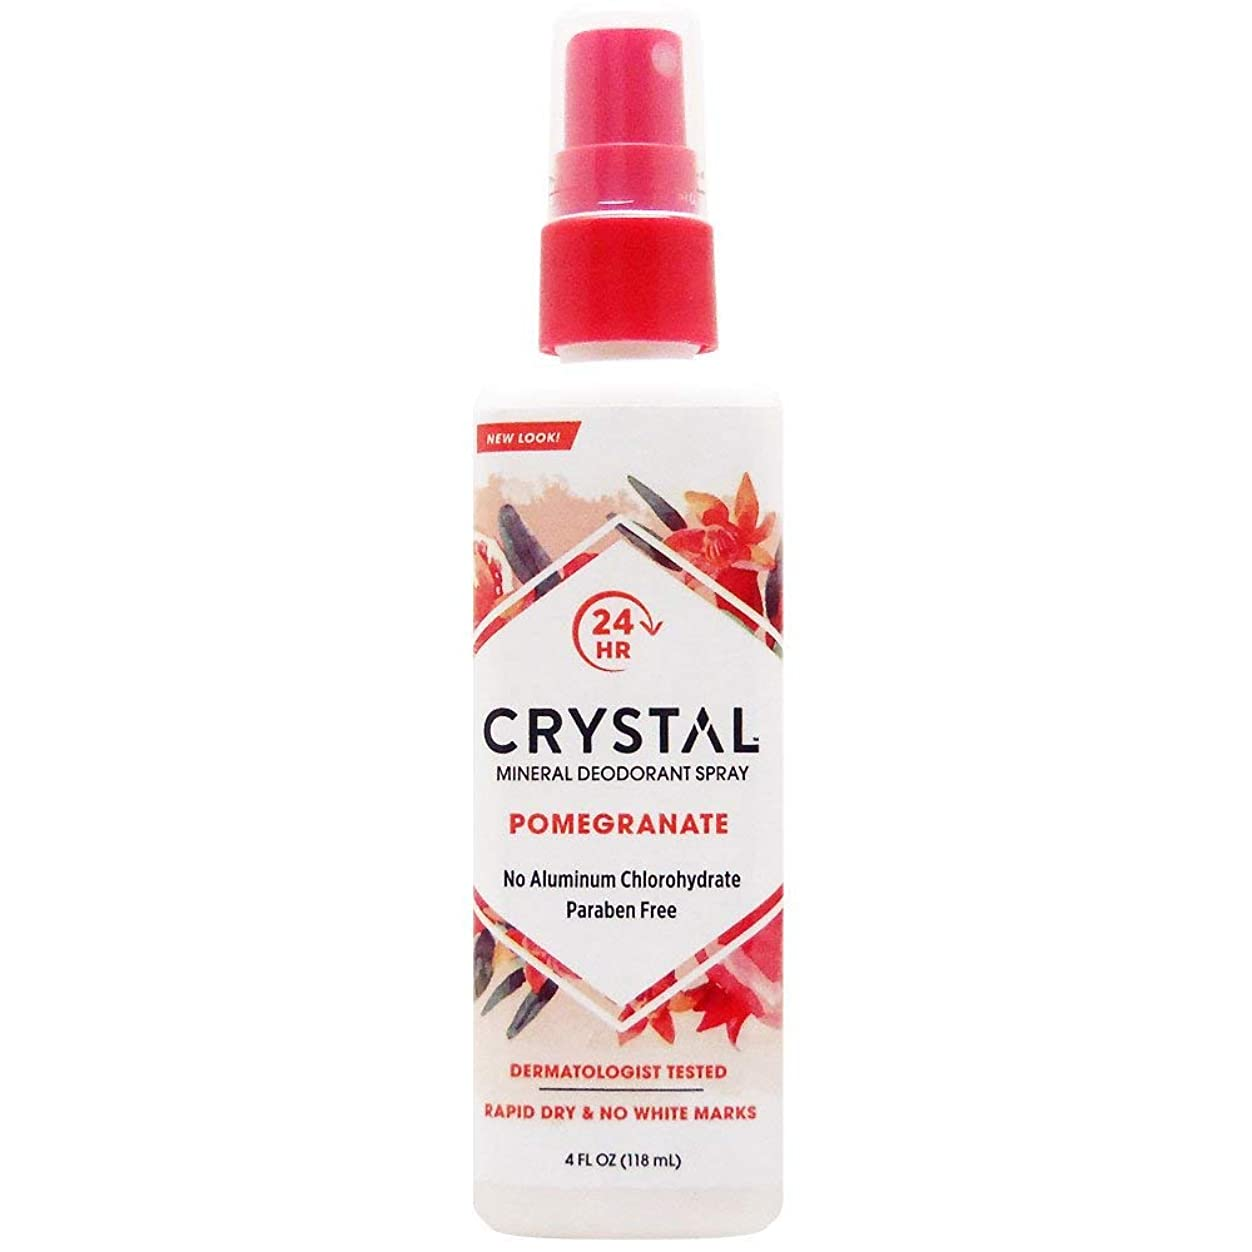 プログラム順番義務づけるCrystal Essence 486522 Crystal Essence Mineral Deodorant Body Spray Pomegranate - 4 fl oz